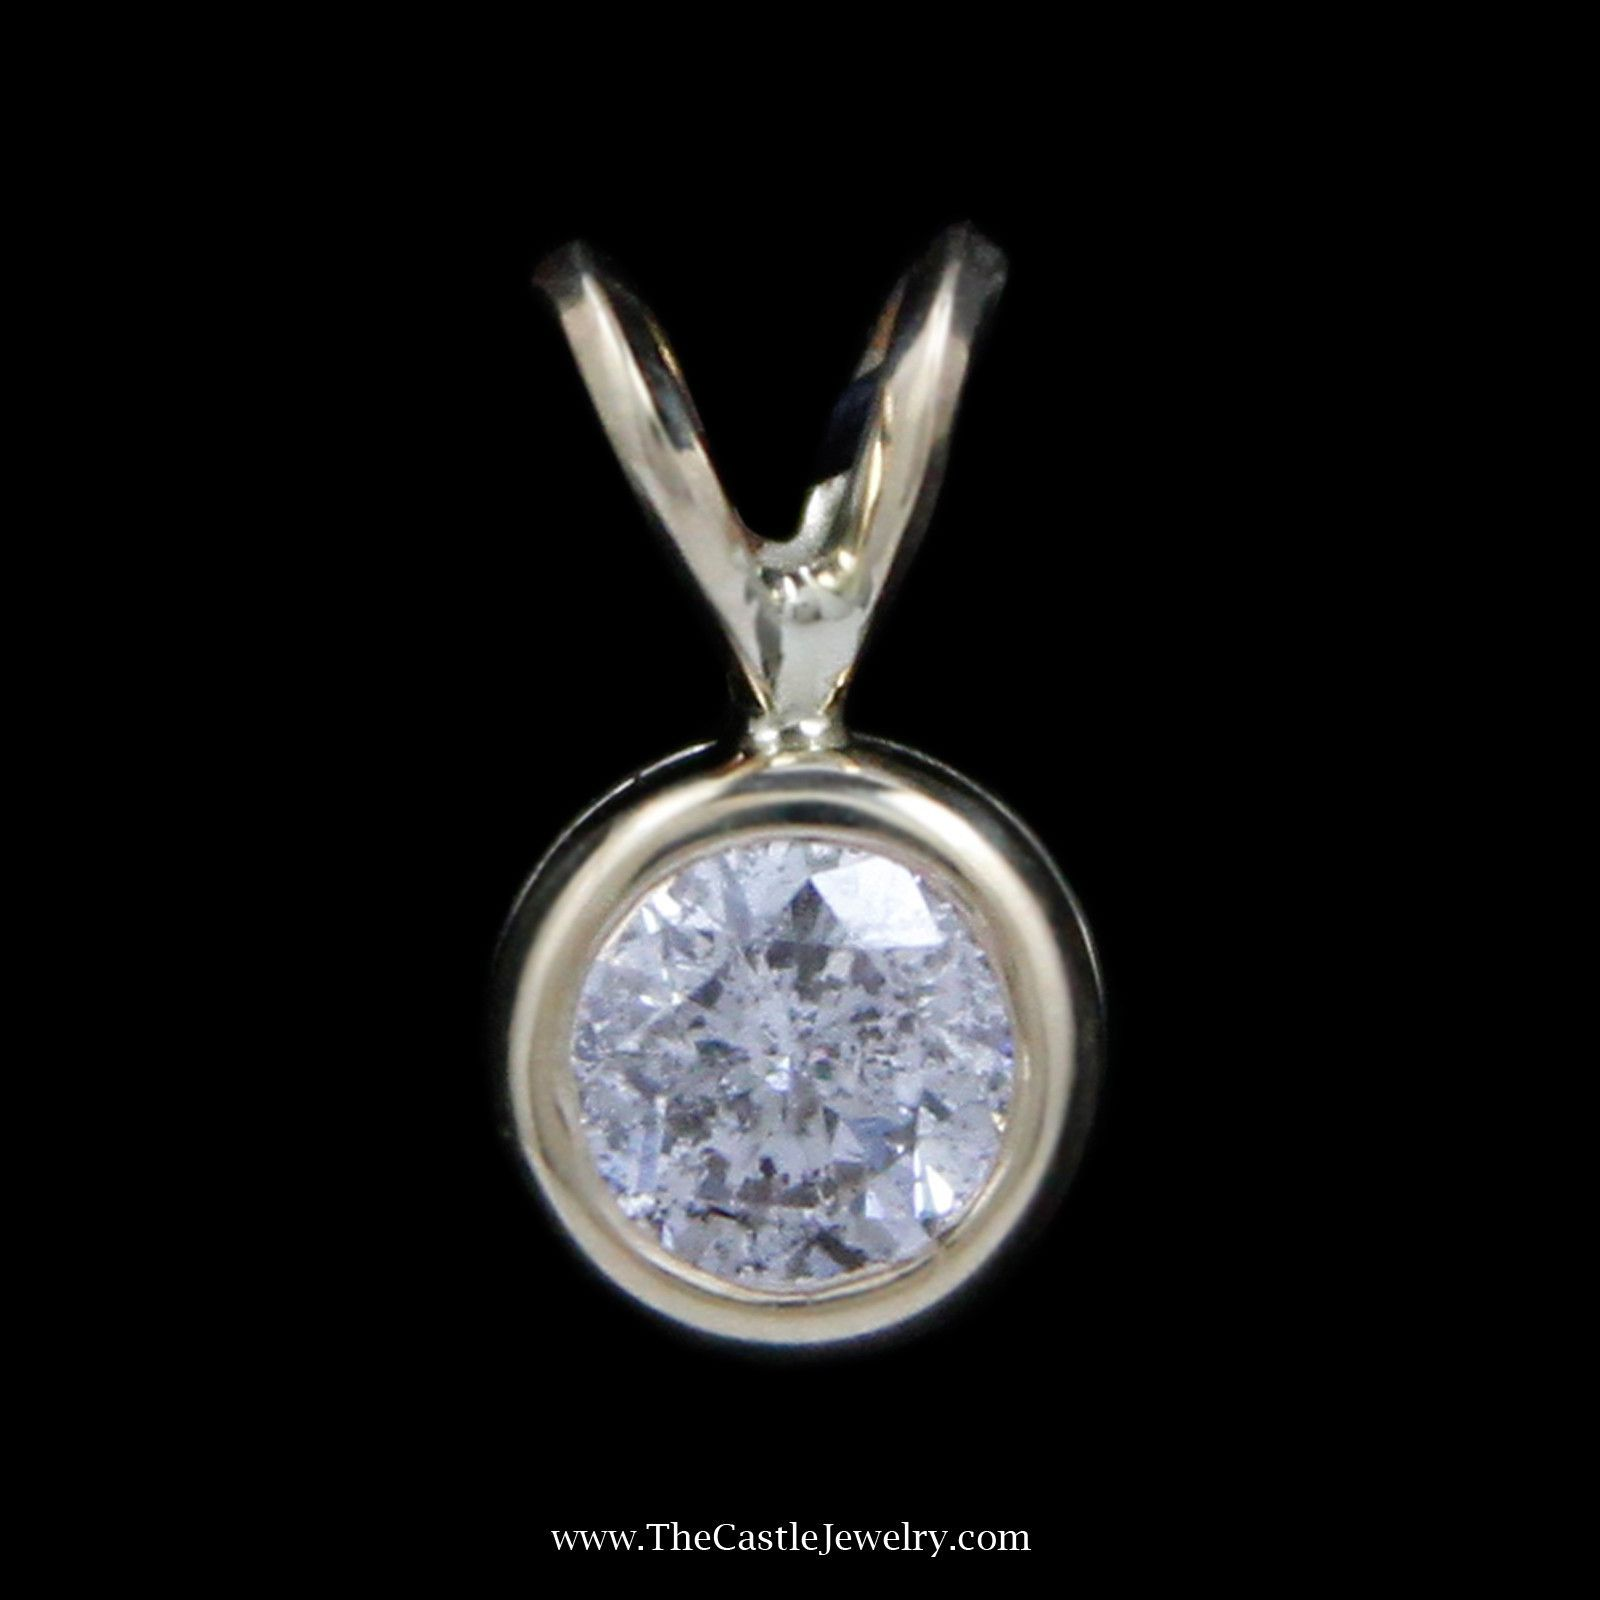 Beautiful ct round brilliant cut diamond solitaire pendant in